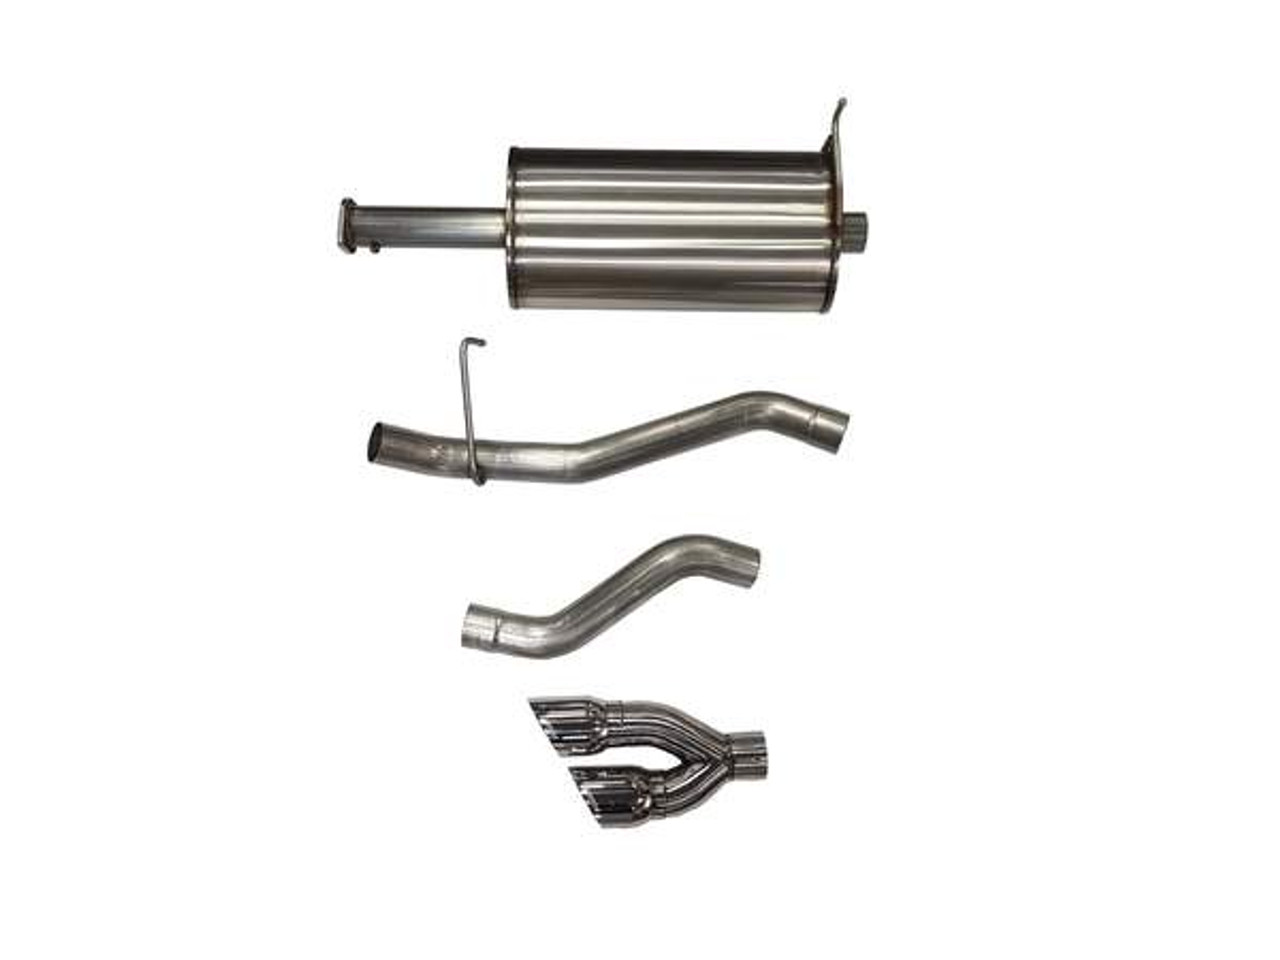 Dual Rear Exit with Black Twin Pro Series Tips 1 Pack Corsa 14968BLK Cat Back Exhaust